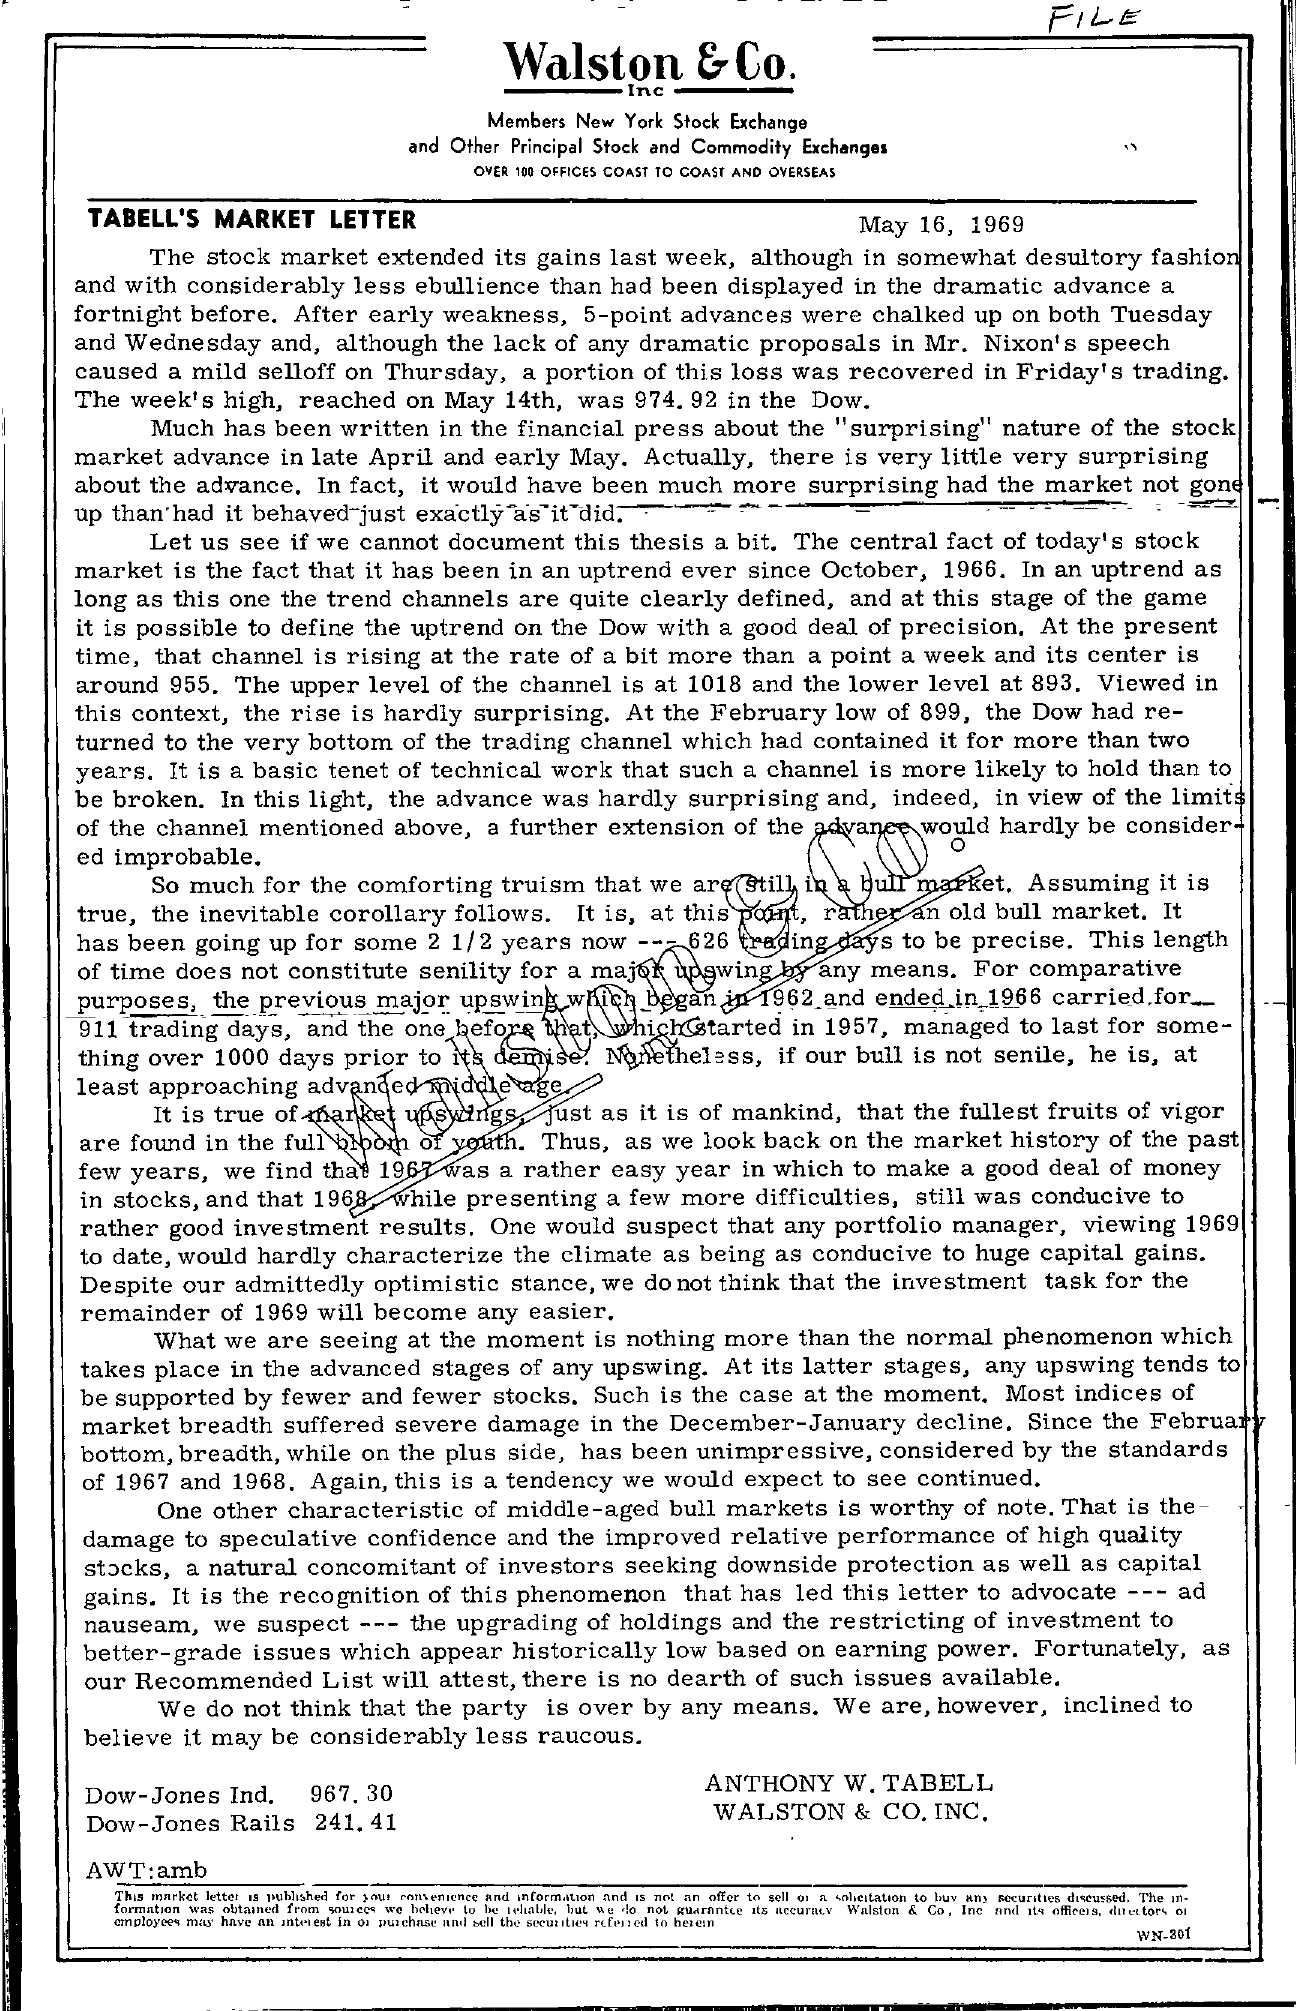 Tabell's Market Letter - May 16, 1969